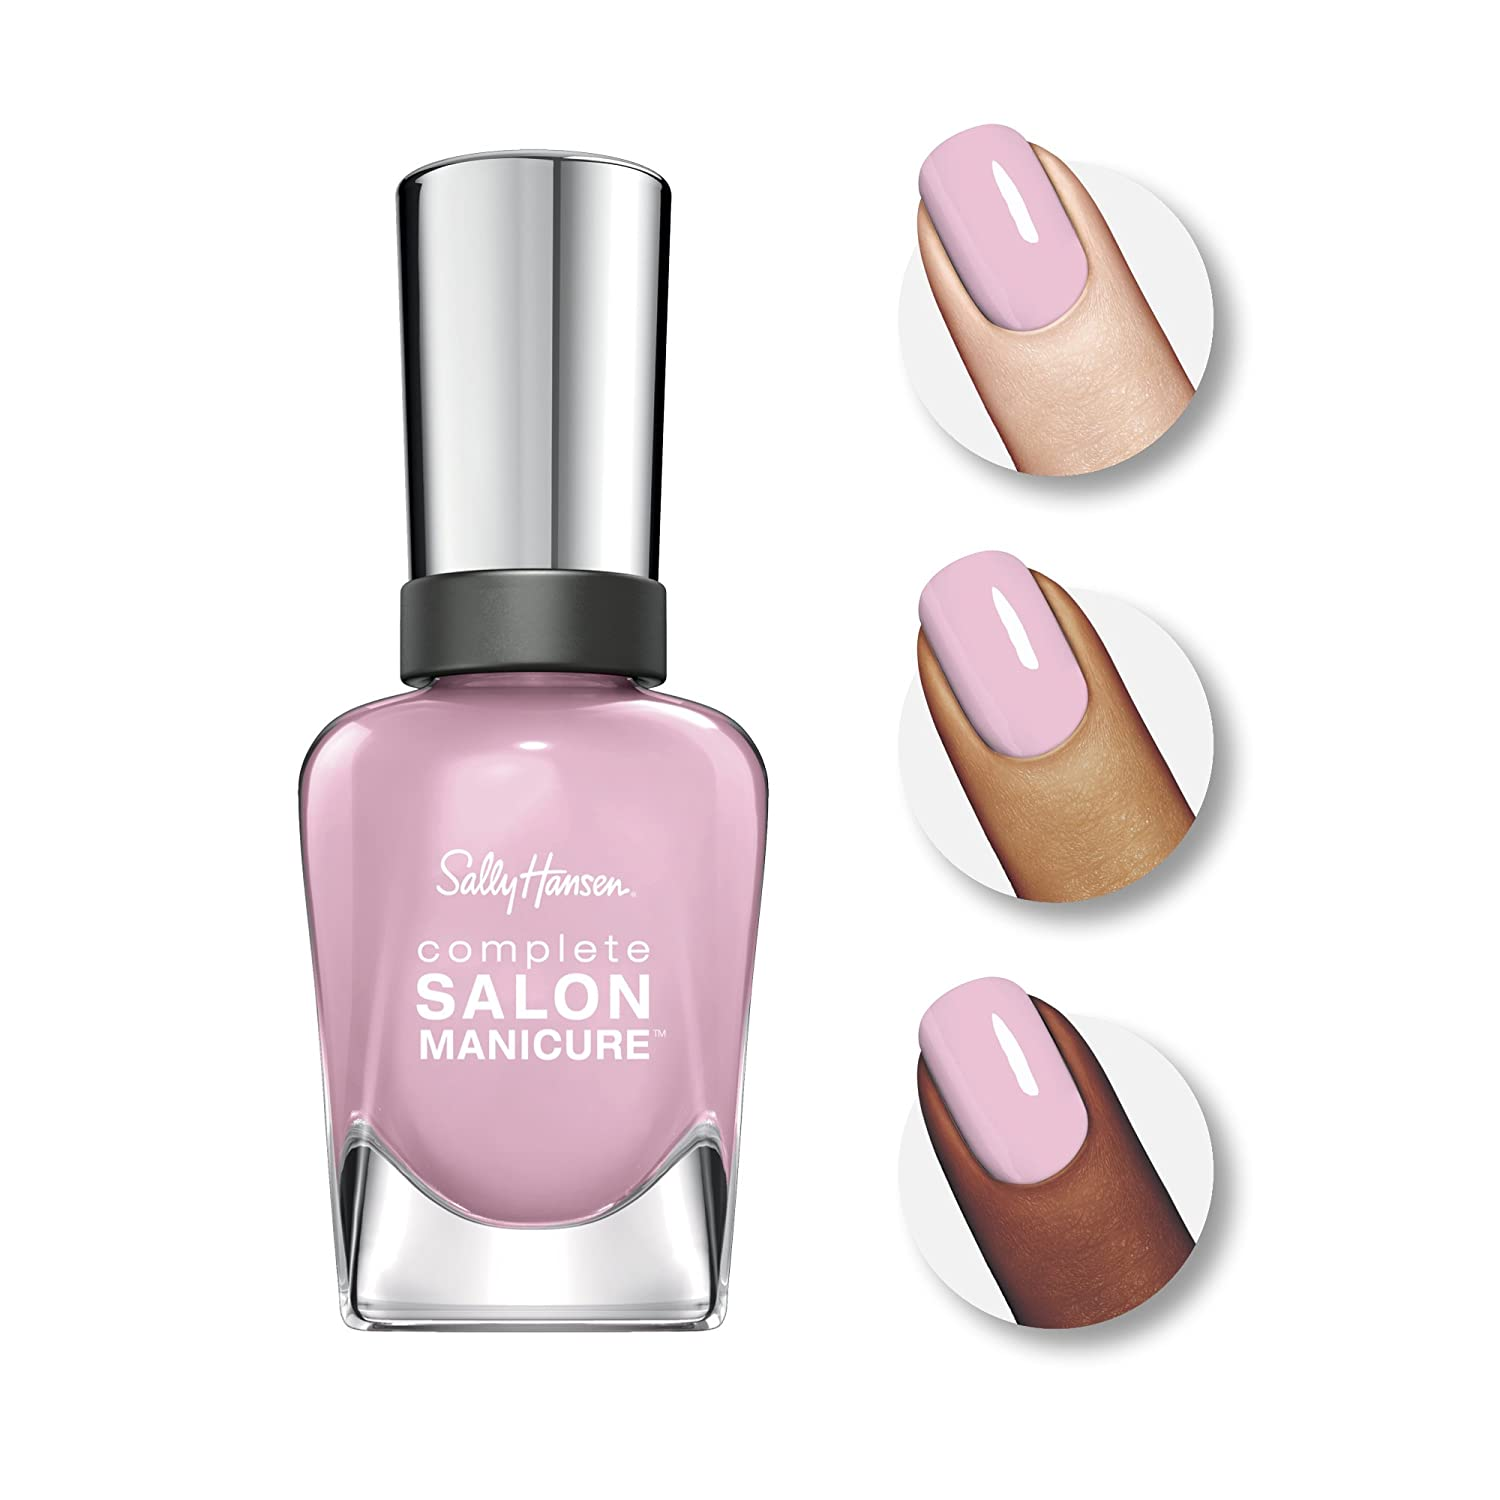 Sally Hansen Complete Salon Manicure Nail Color Pinks